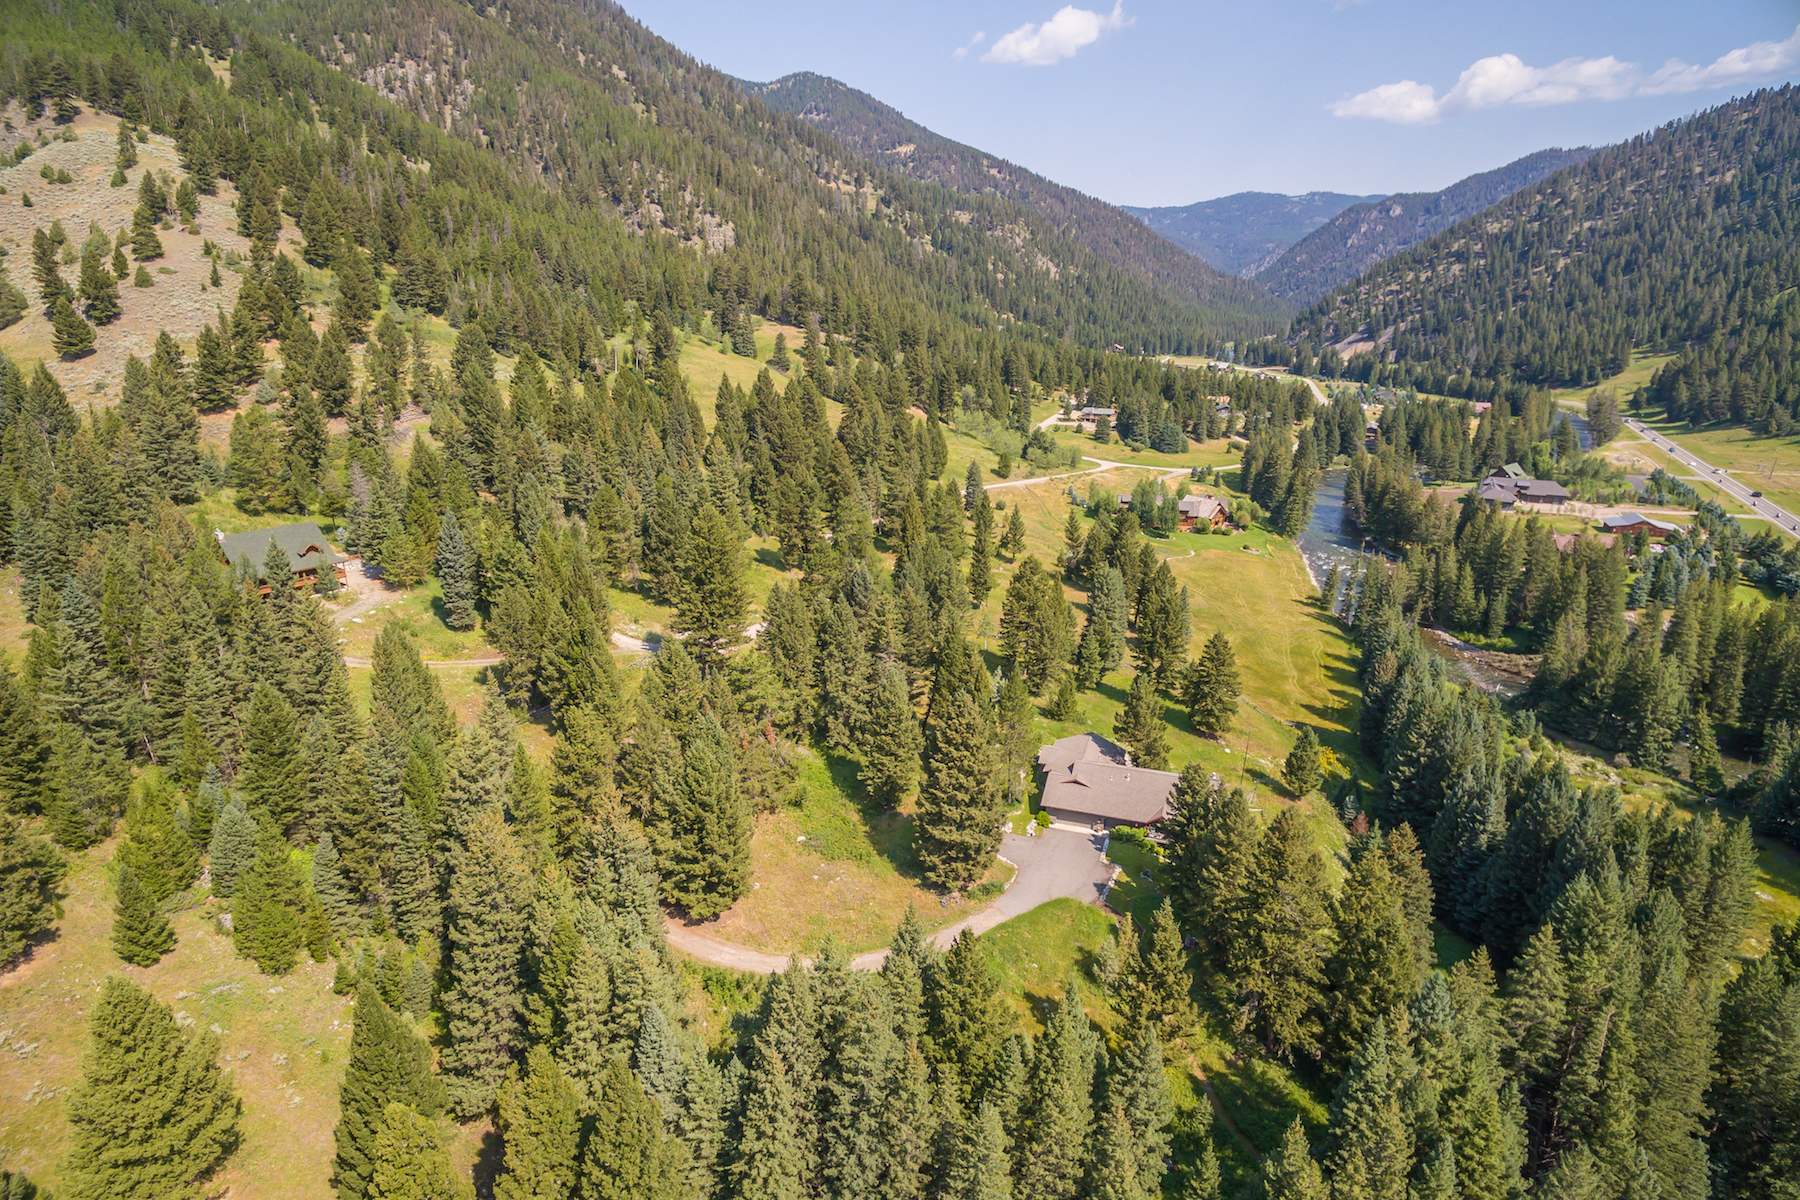 Casa Unifamiliar por un Venta en Karst Creek Home 270 Karst Creek Lane Big Sky, Montana, 59716 Estados Unidos